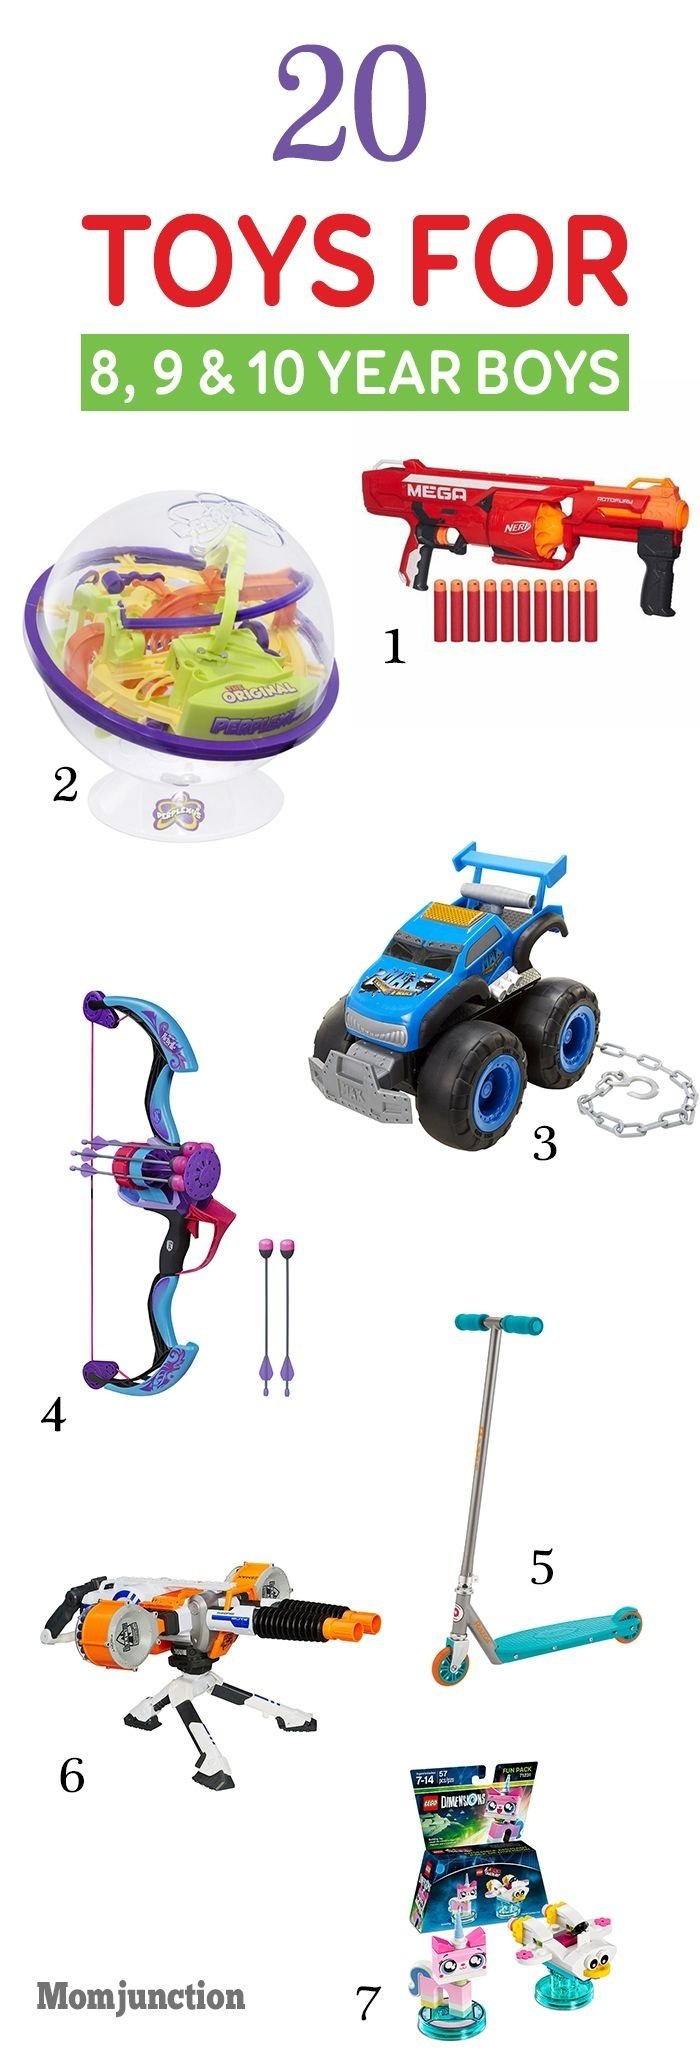 10 Ideal Gift Ideas For 8 Year Old Boy 19 perfect toys for 8 9 and 10 year old boys 10 years toy and gift 1 2020